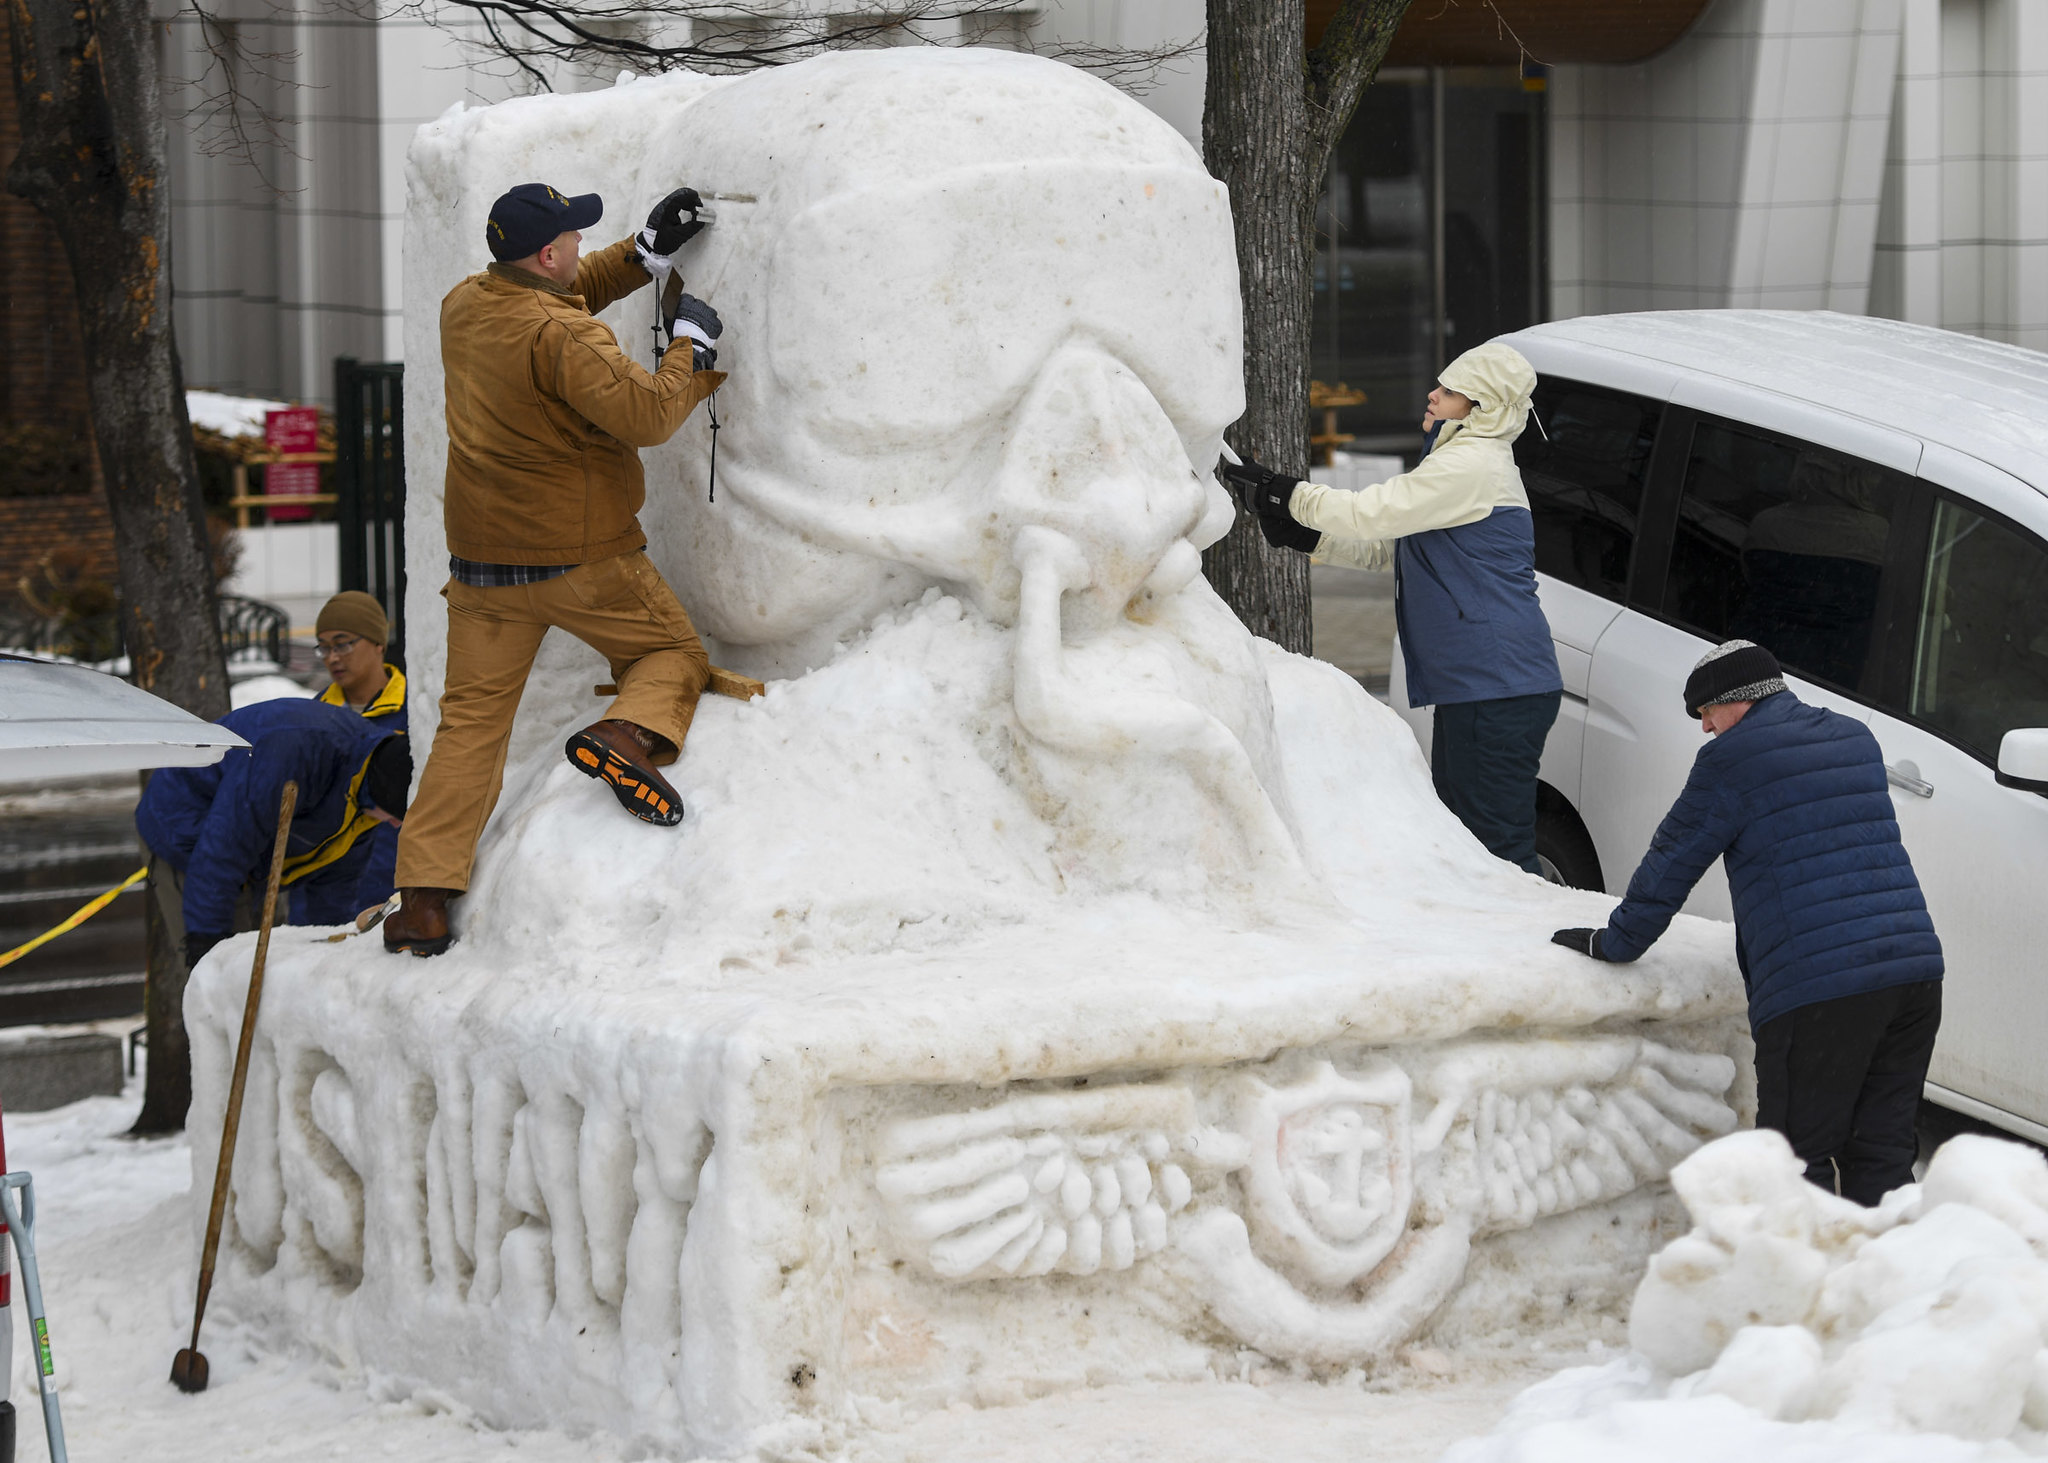 Sailors from Naval Air Facility Misawa, Japan, and tenant commands sculpt a snow statue Jan. 30, 2020, during the 71st annual Sapporo Snow Festival. (Mass Communication Specialist 3rd Class Jan David De Luna Mercado/Navy)